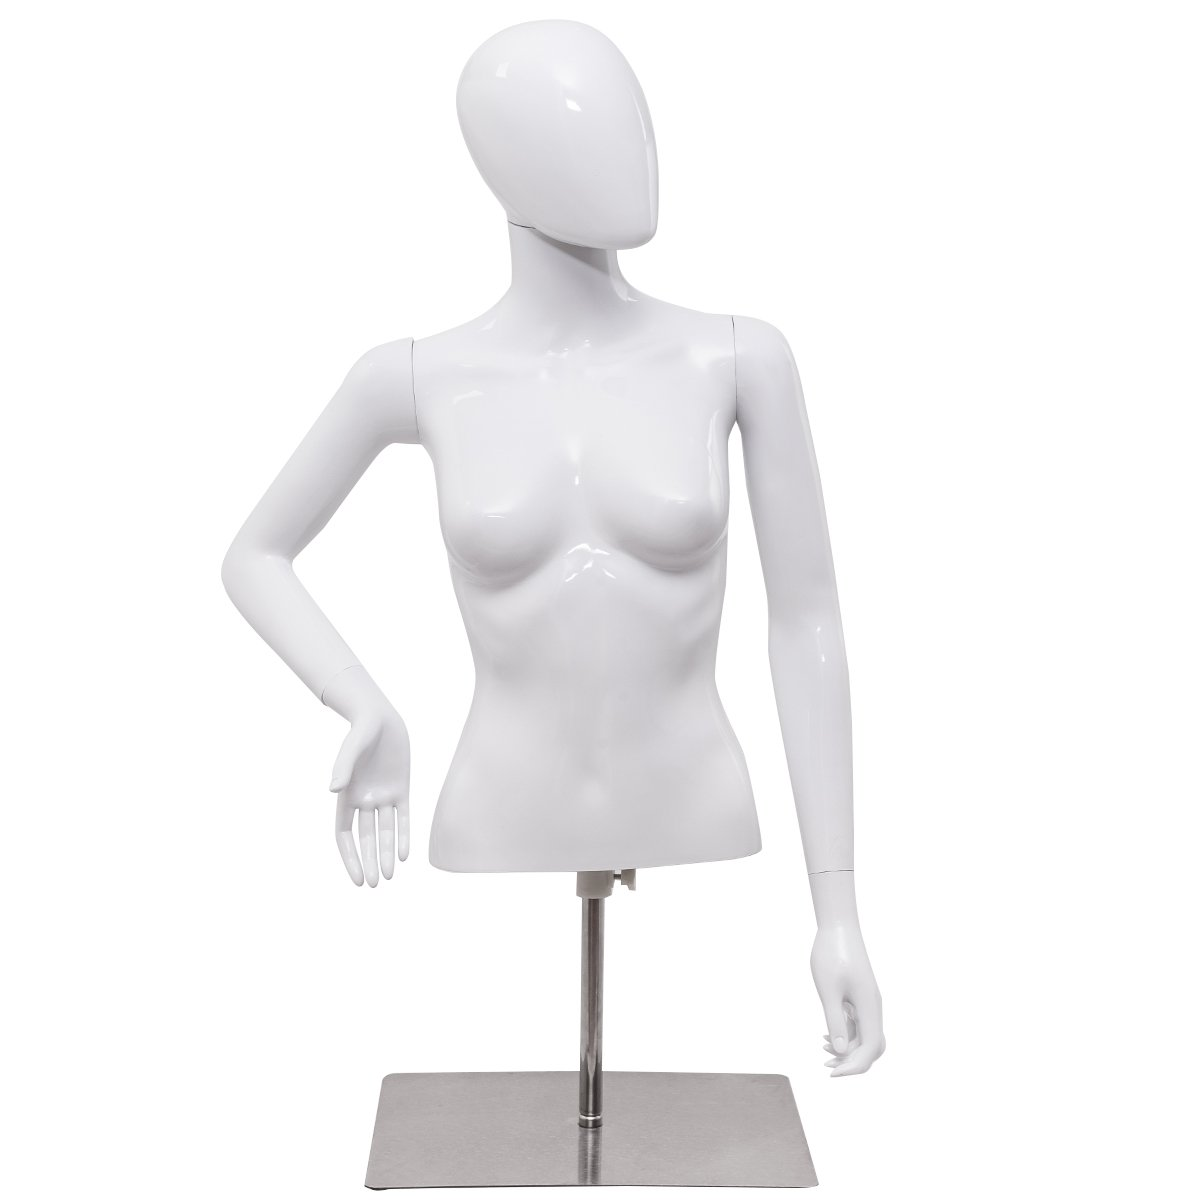 Giantex Female Half Body Mannequin Torso Dress Form Clothing Display Adjust Height & Arms with Base, Bright White HW55637